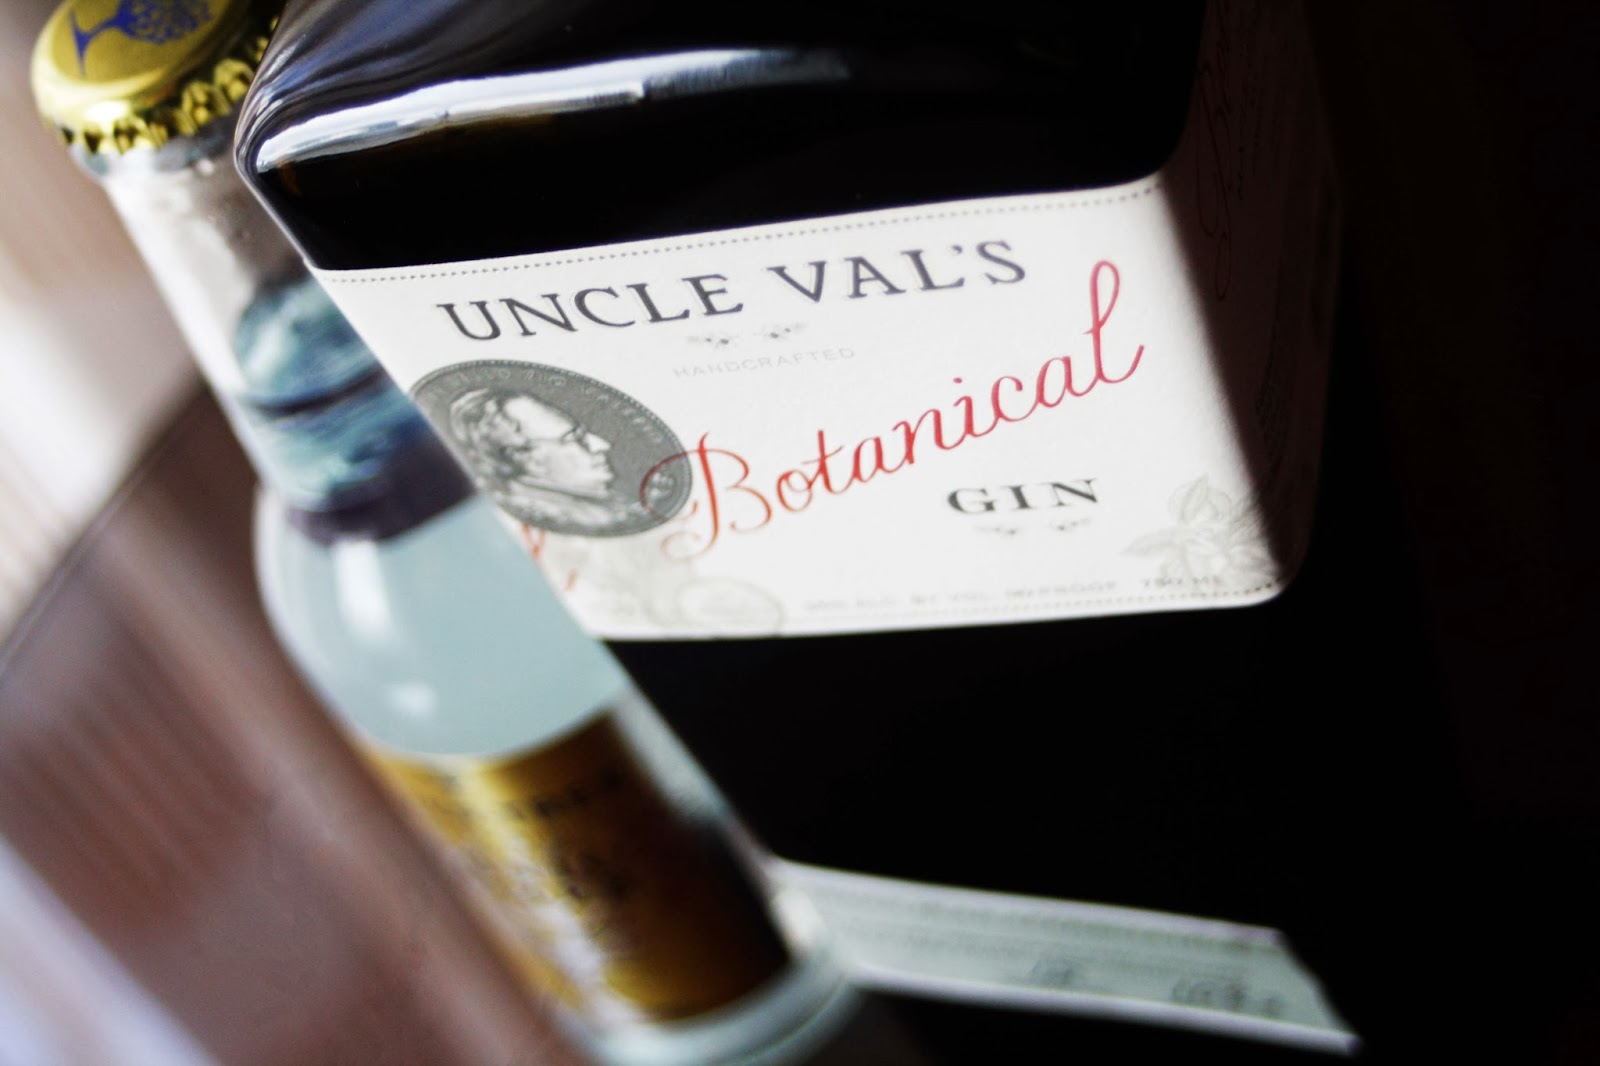 uncle val's botanical gin and fever tree tonic